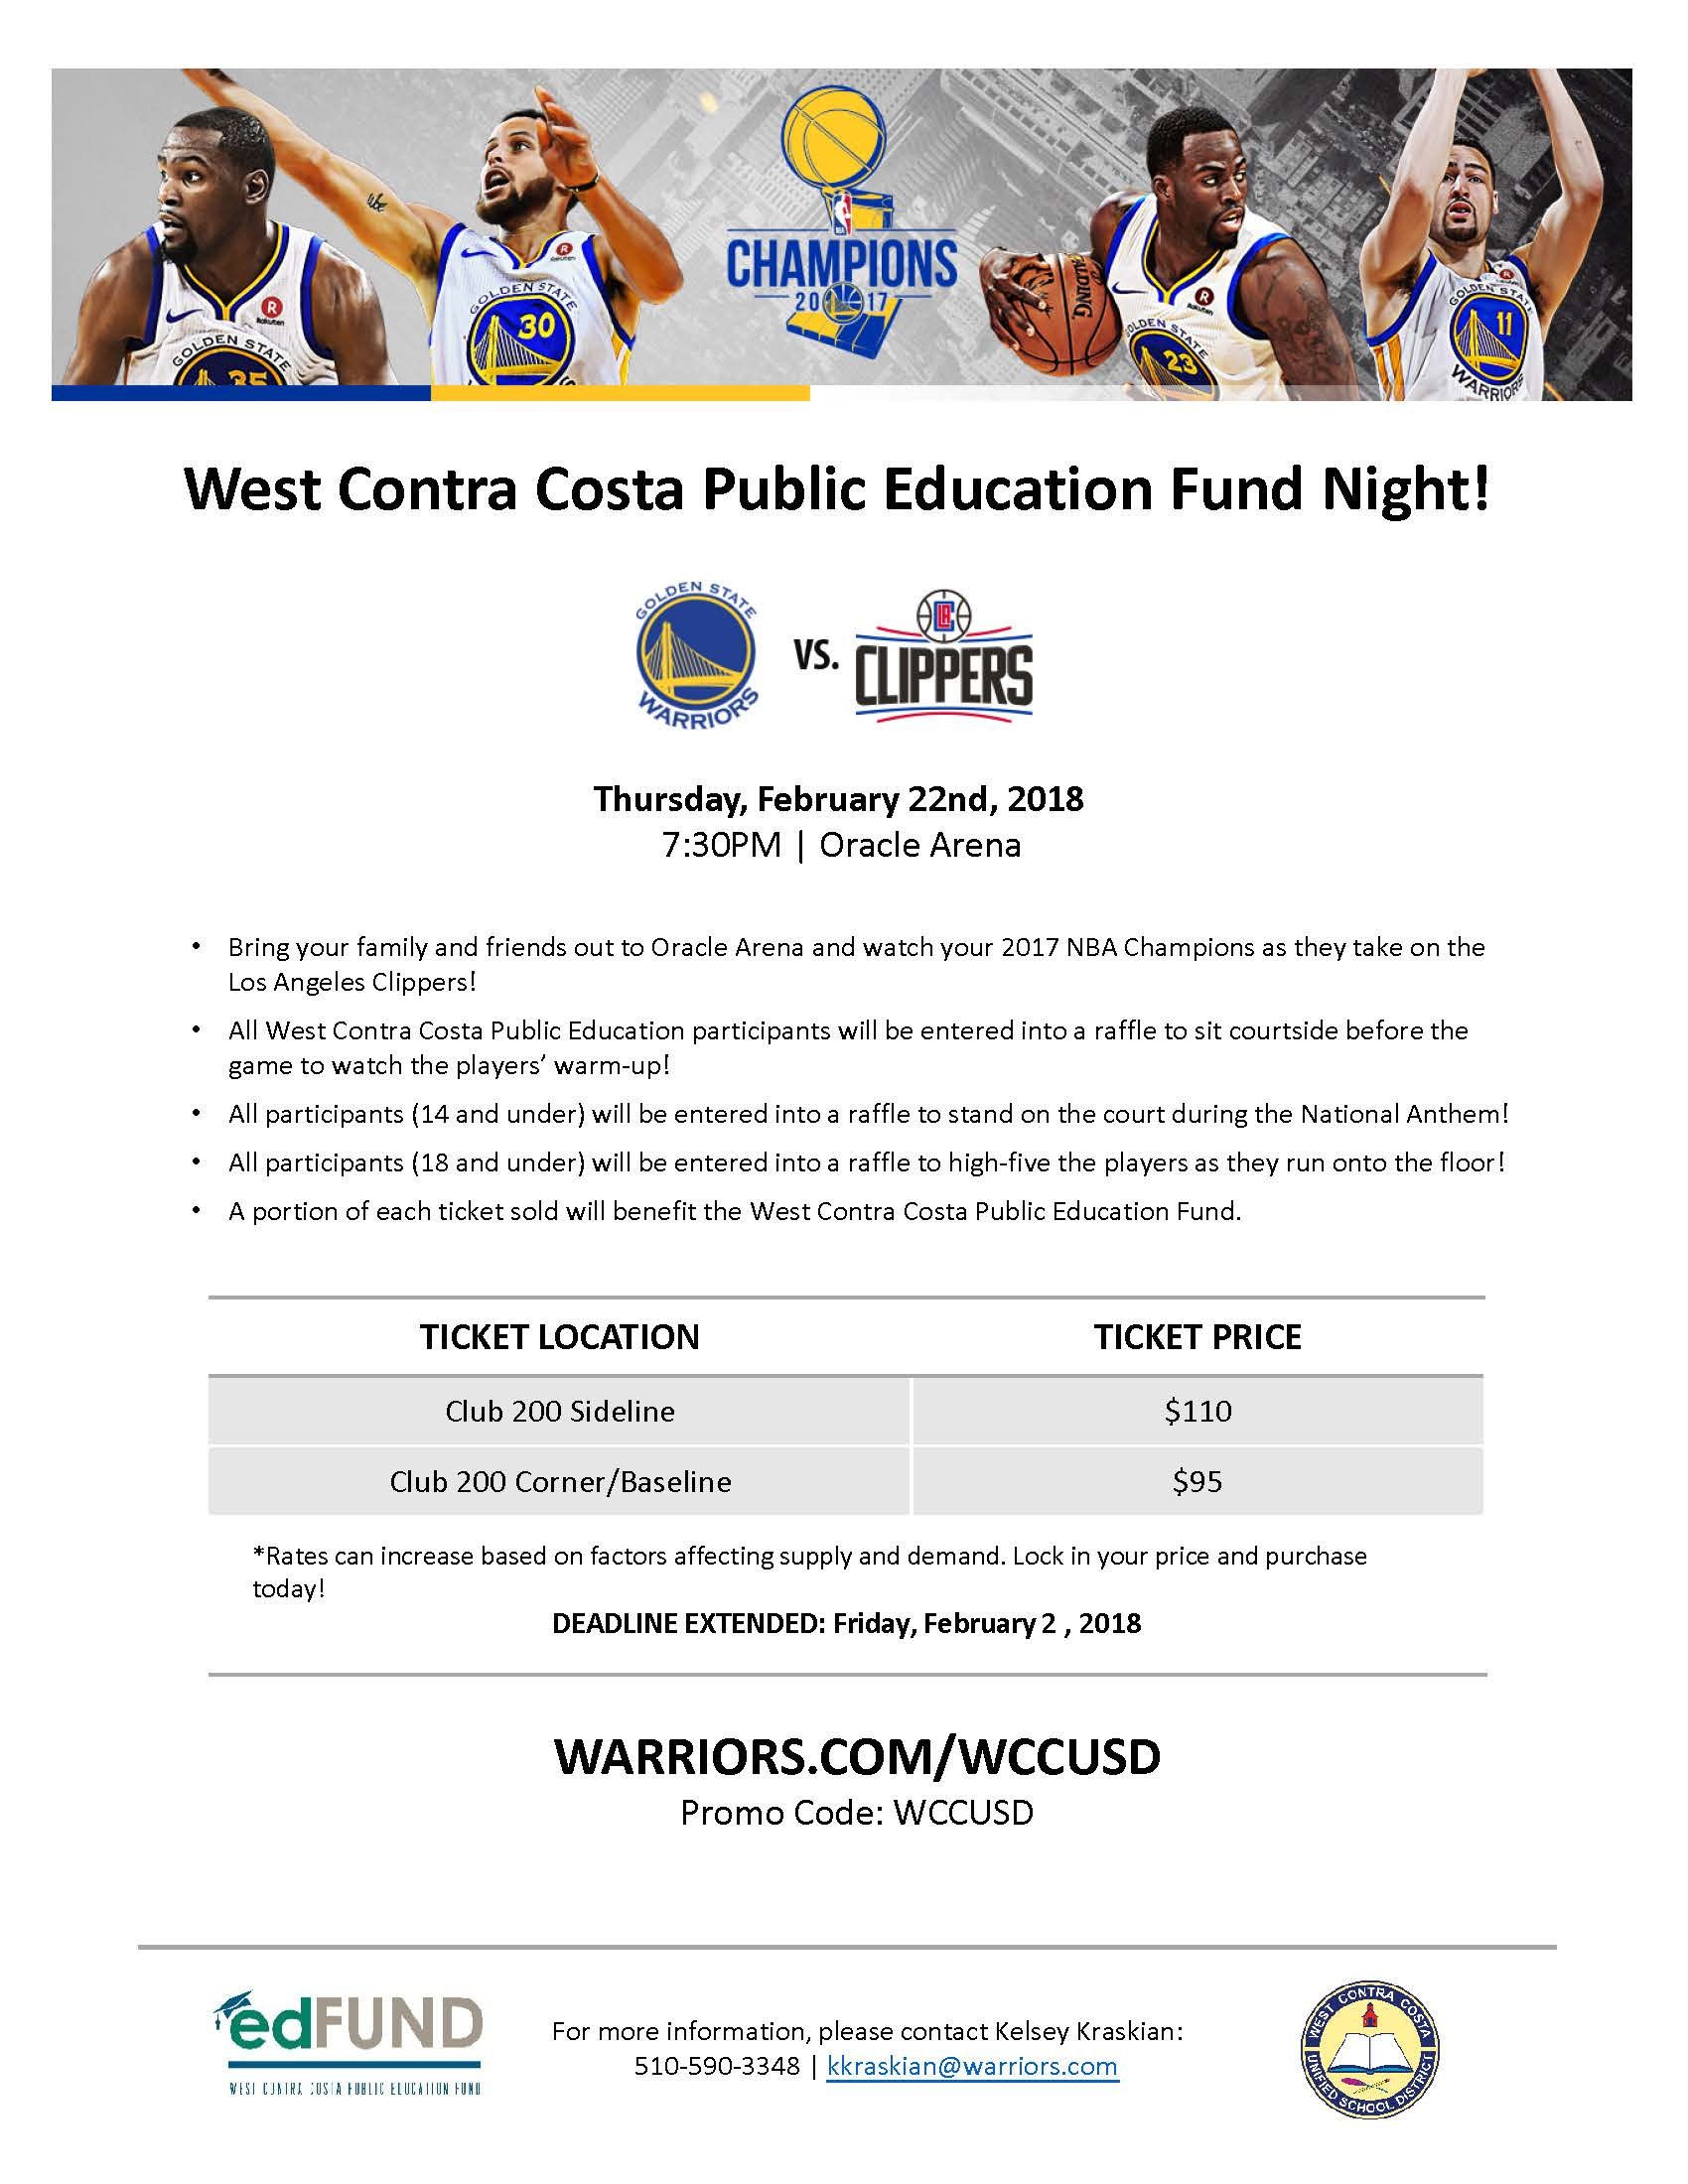 Updated WCCUSD Warriors night flyer